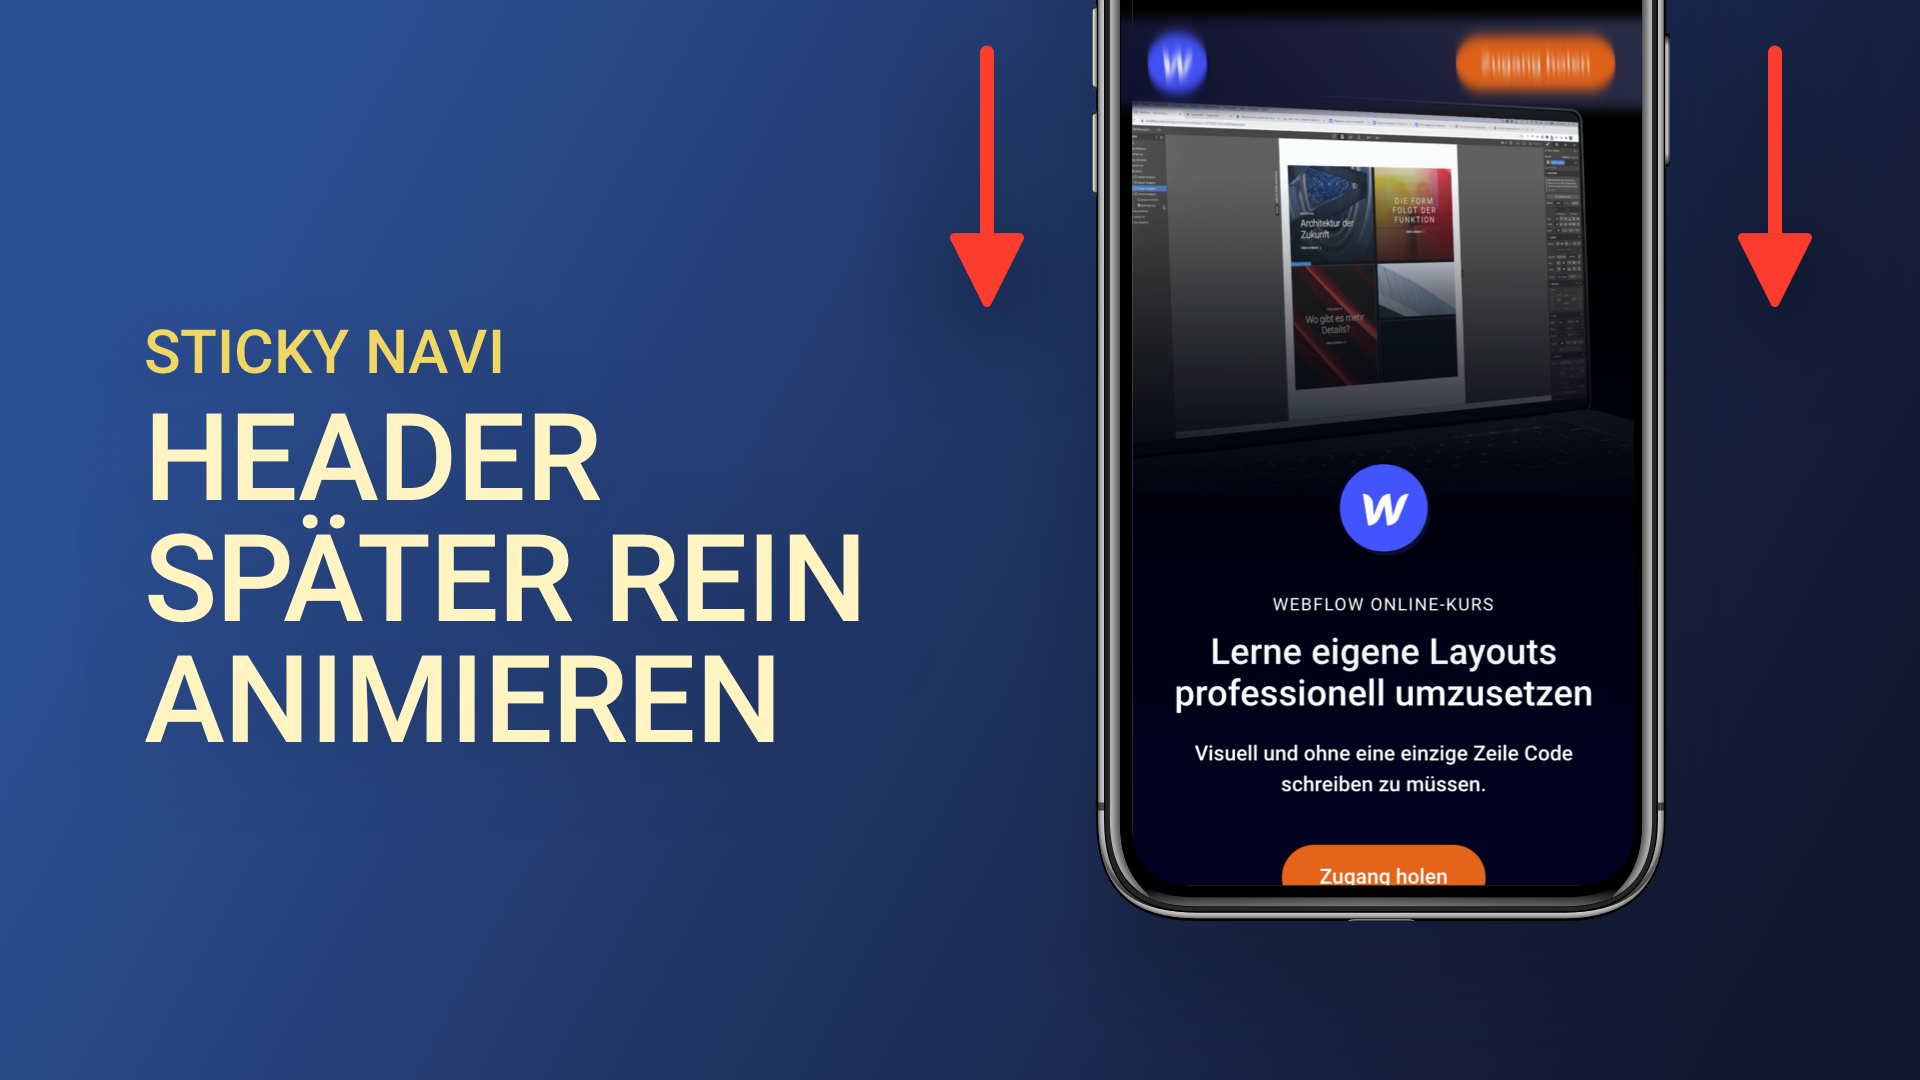 Header in Webflow später rein animieren